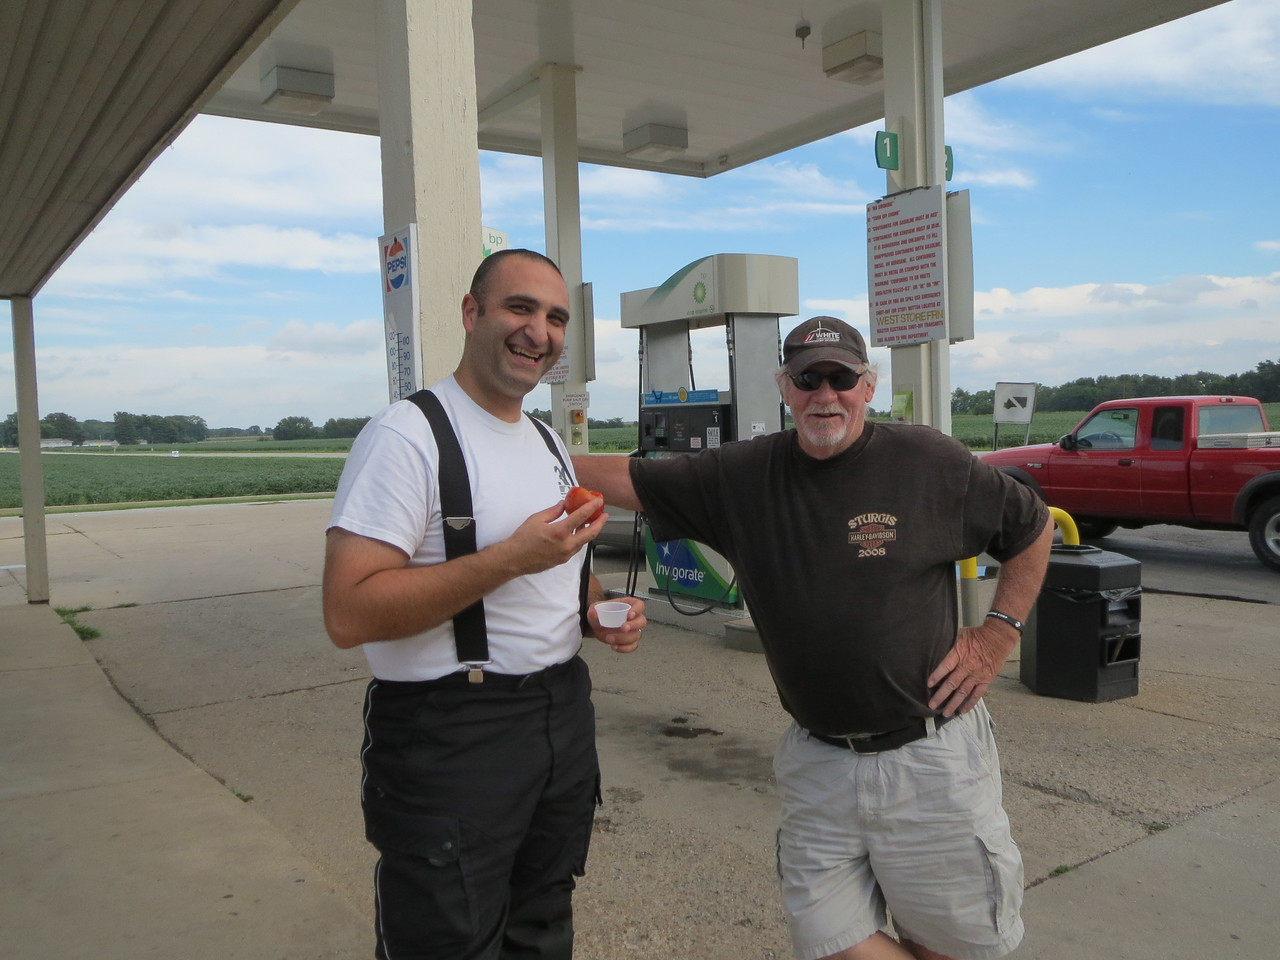 Day 1 (681 miles):   Bikes and gas stations are catalysts for conversation, people are always coming up and talking, especially if they see you are from out of state.  This guy has a Harley (and at least one Harley shirt).  I was eating a tomato given to me by the gas station clerk.  Totally random but I thought I'd mention it.  It was a very good tomato.